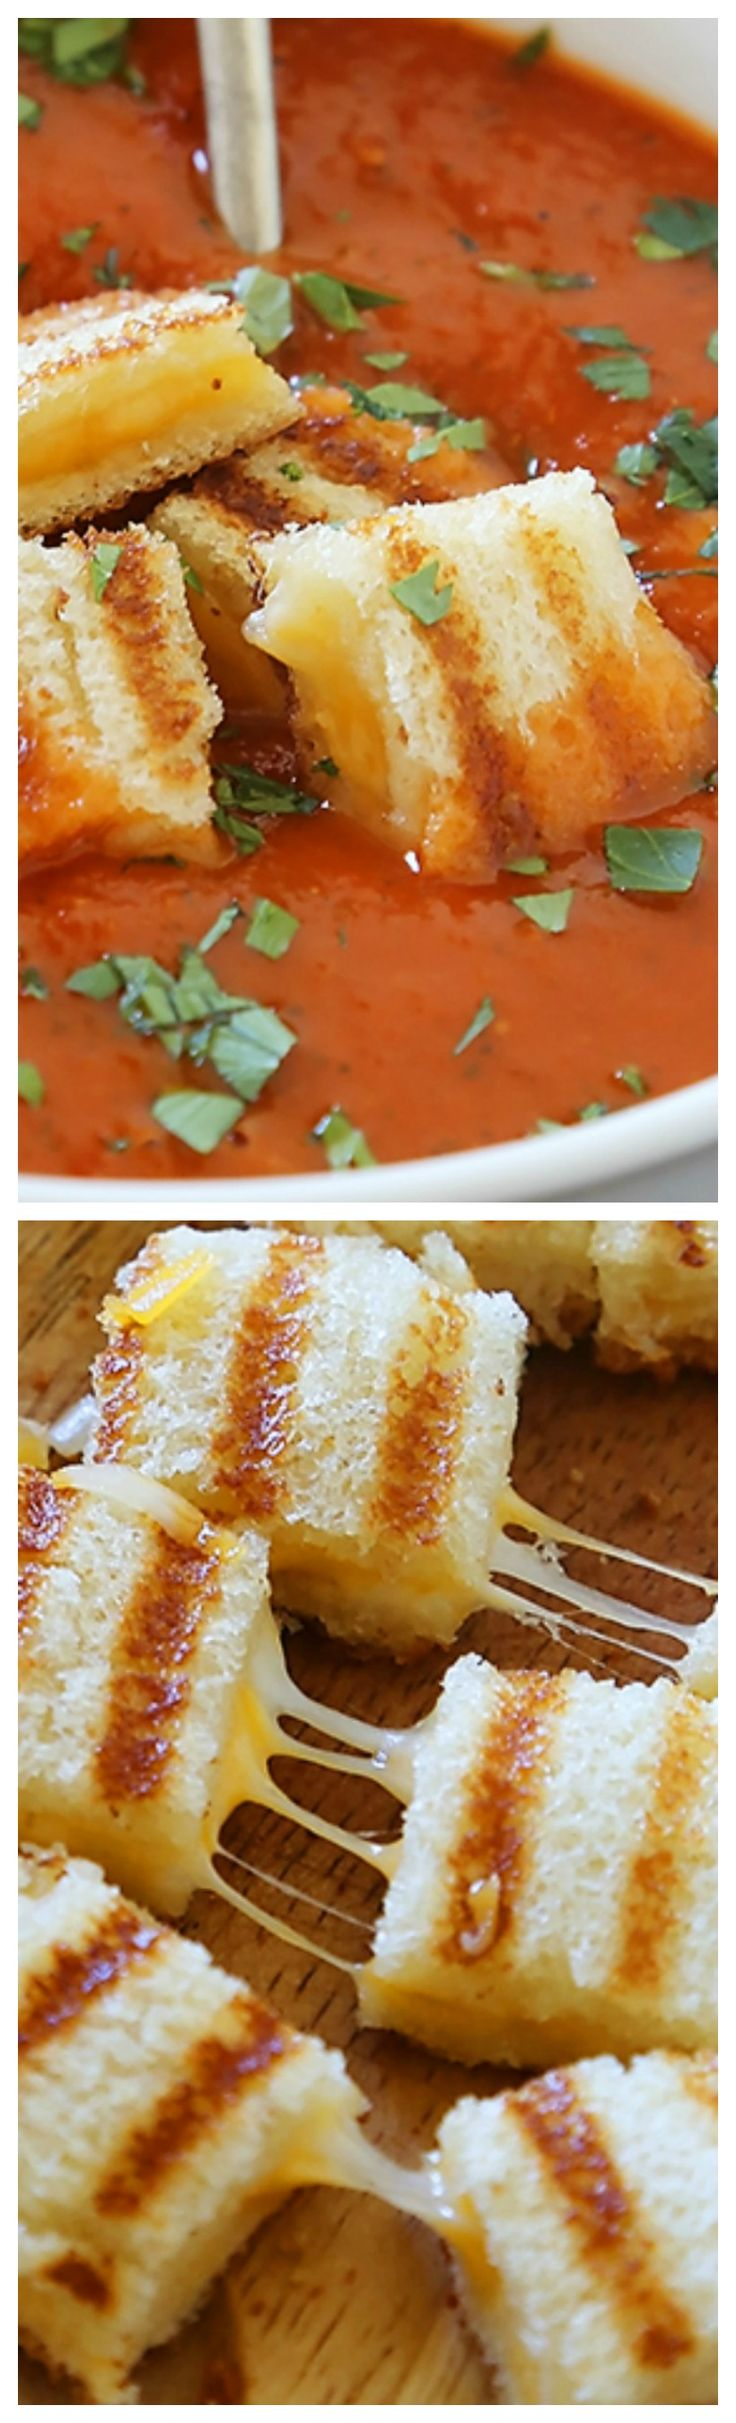 Tomato-Basil Soup with Grilled Cheese Croutons ~ This hearty, healthy tomato basil soup is easily made in under an hour. Both kids and adults will rave for this one! Top with crispy, gooey grilled cheese croutons and serve with a green salad for a delicious weeknight dinner.